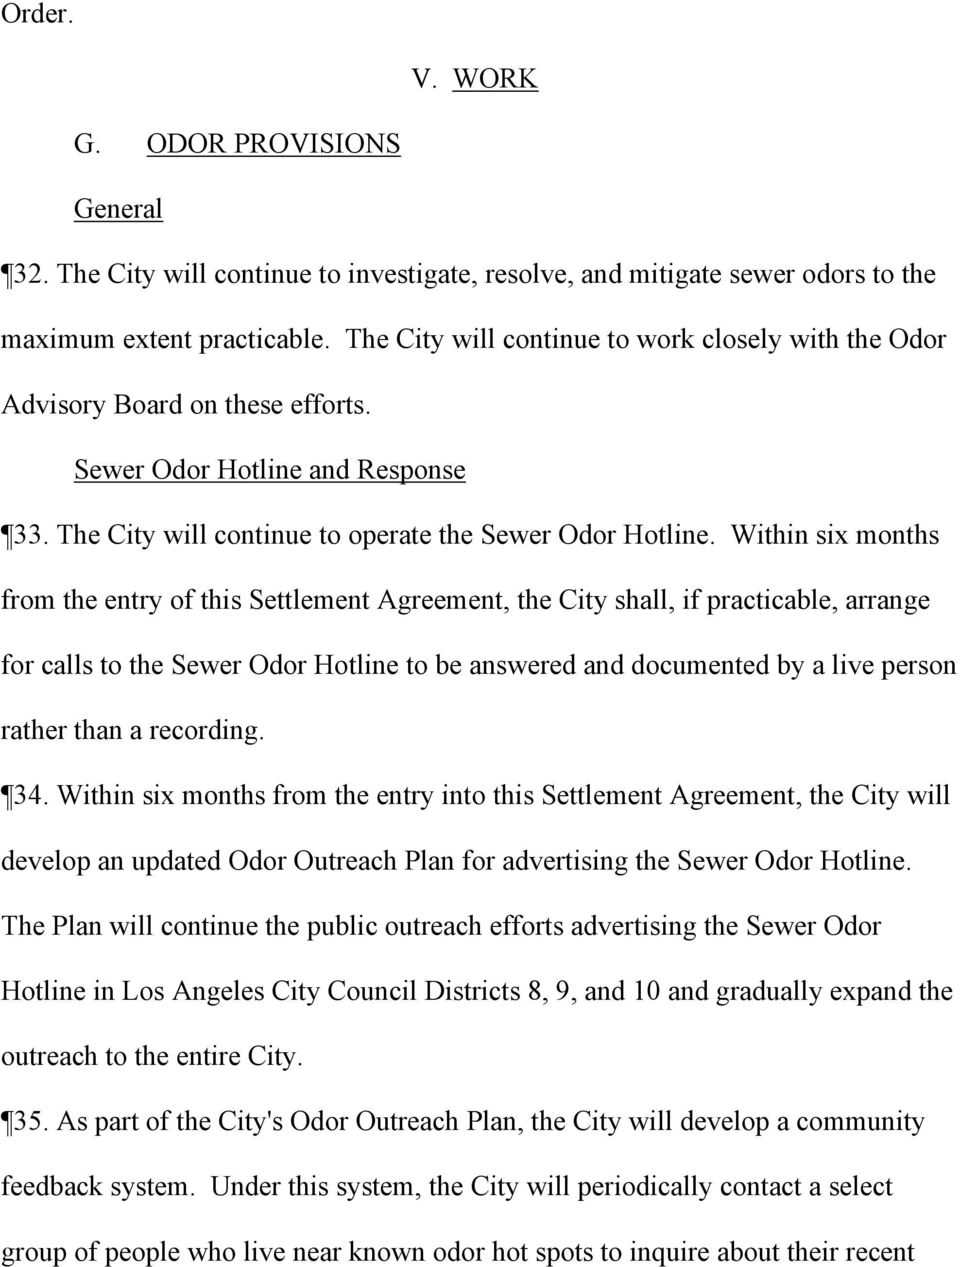 Within six months from the entry of this Settlement Agreement, the City shall, if practicable, arrange for calls to the Sewer Odor Hotline to be answered and documented by a live person rather than a